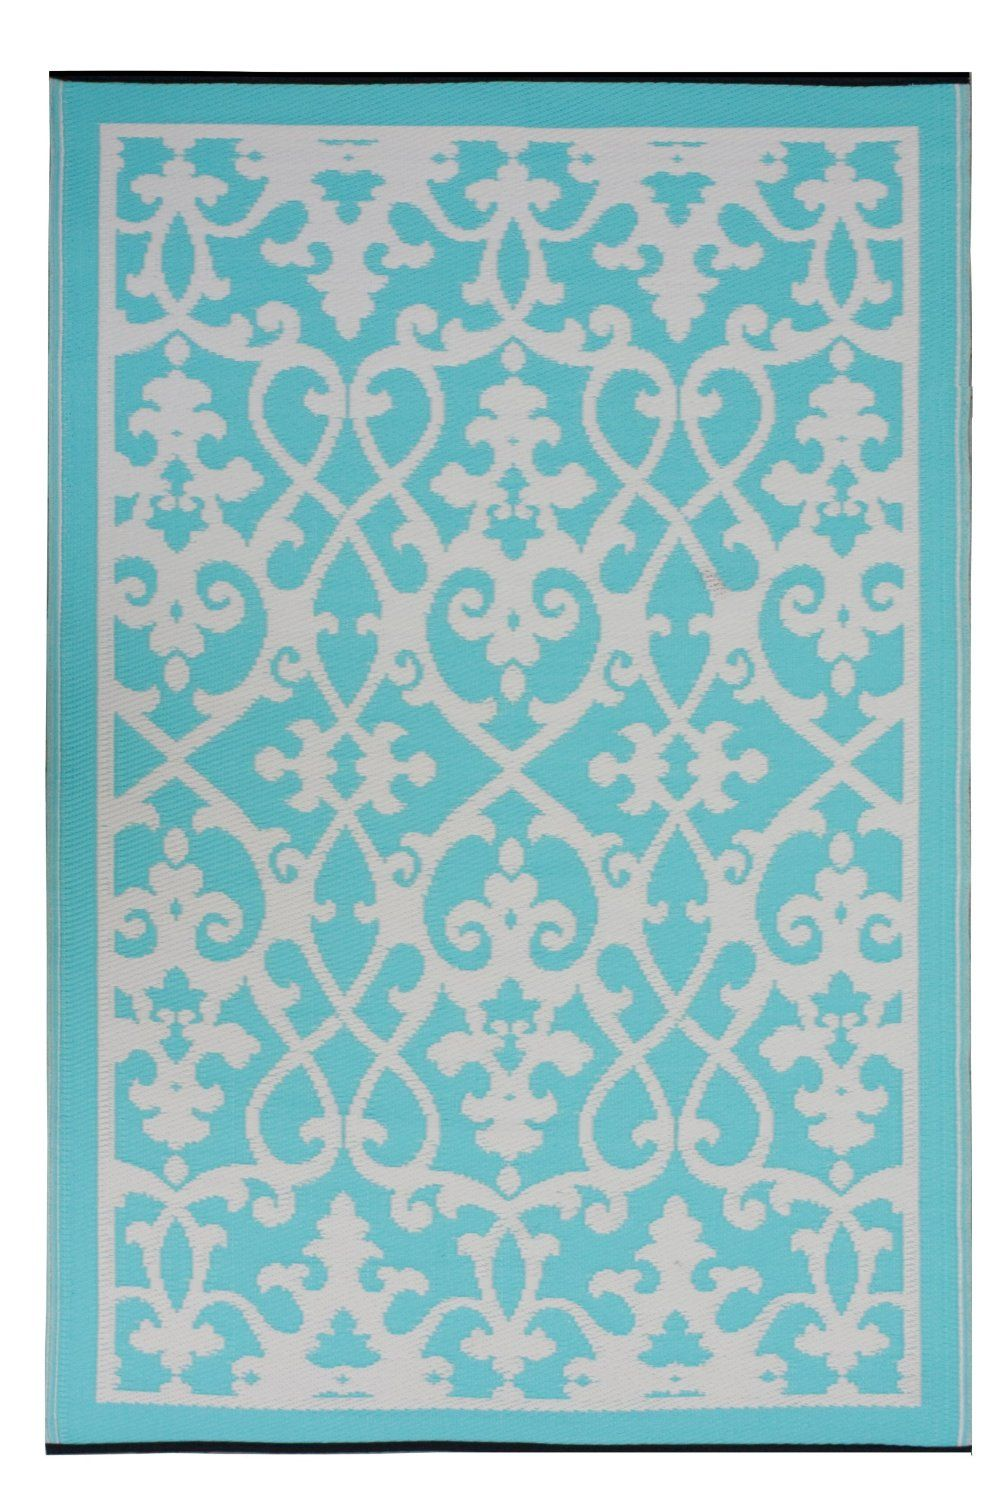 Amazon.com: Fab Habitat 4-Feet by 6-Feet Venice Indoor/Outdoor Rug, Cream and Turquoise: Furniture & Decor